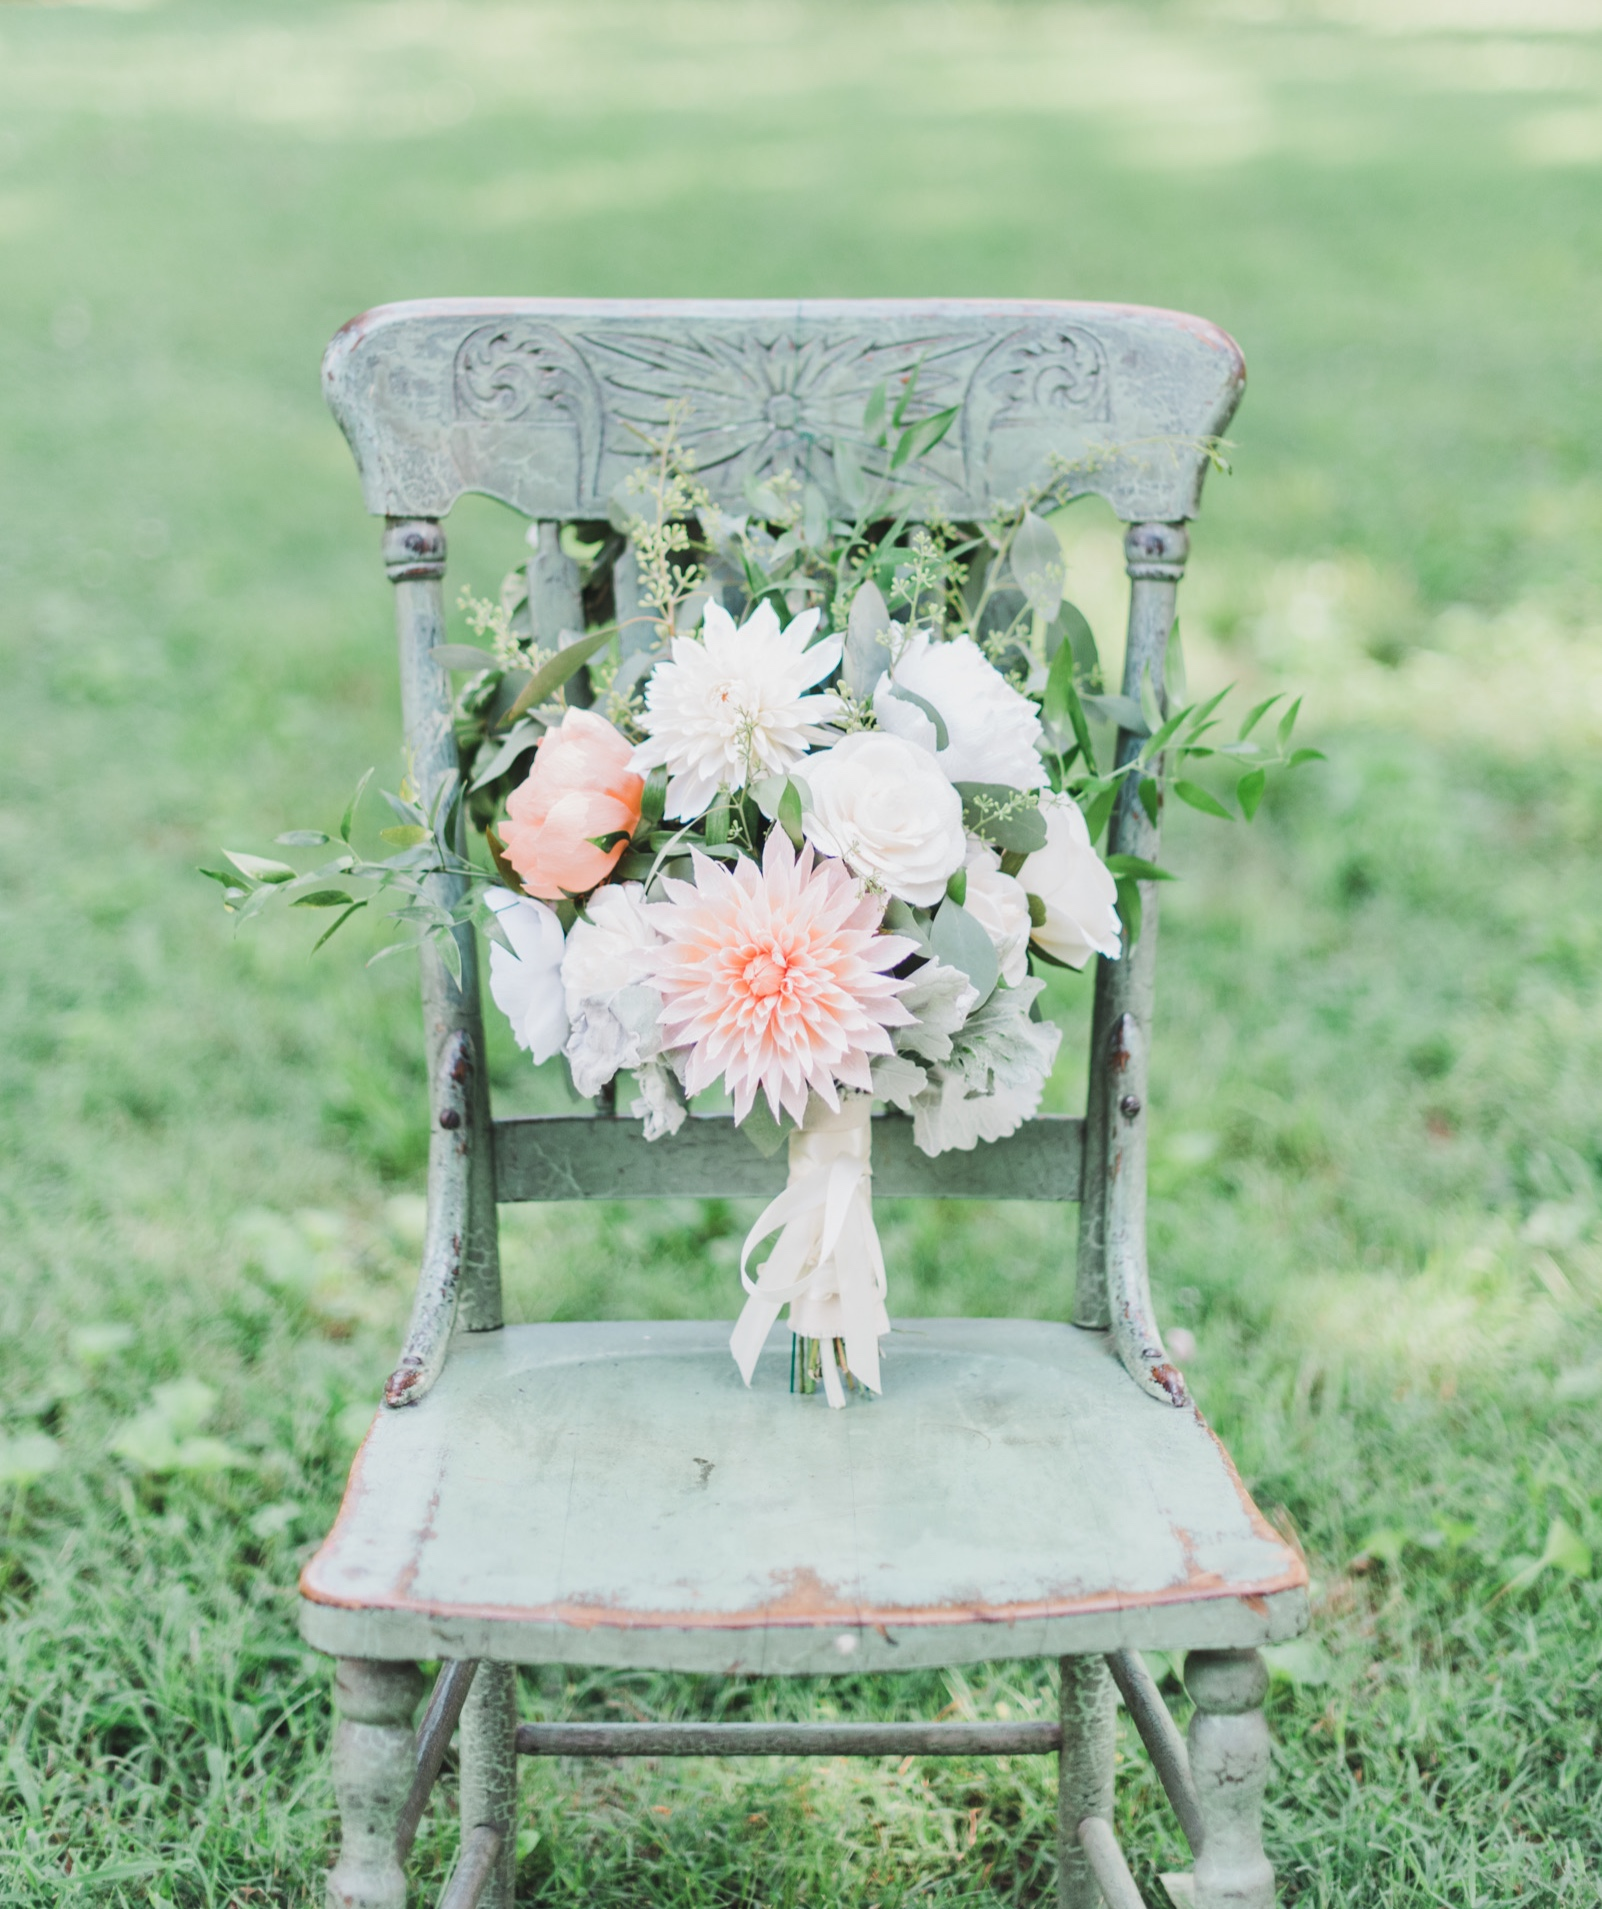 Bridal Bouquet Recreation - With your wedding come and gone, are you wishing you could hold your bridal bouquet one more time? We can recreate your wedding flowers for you to hold for years to come!